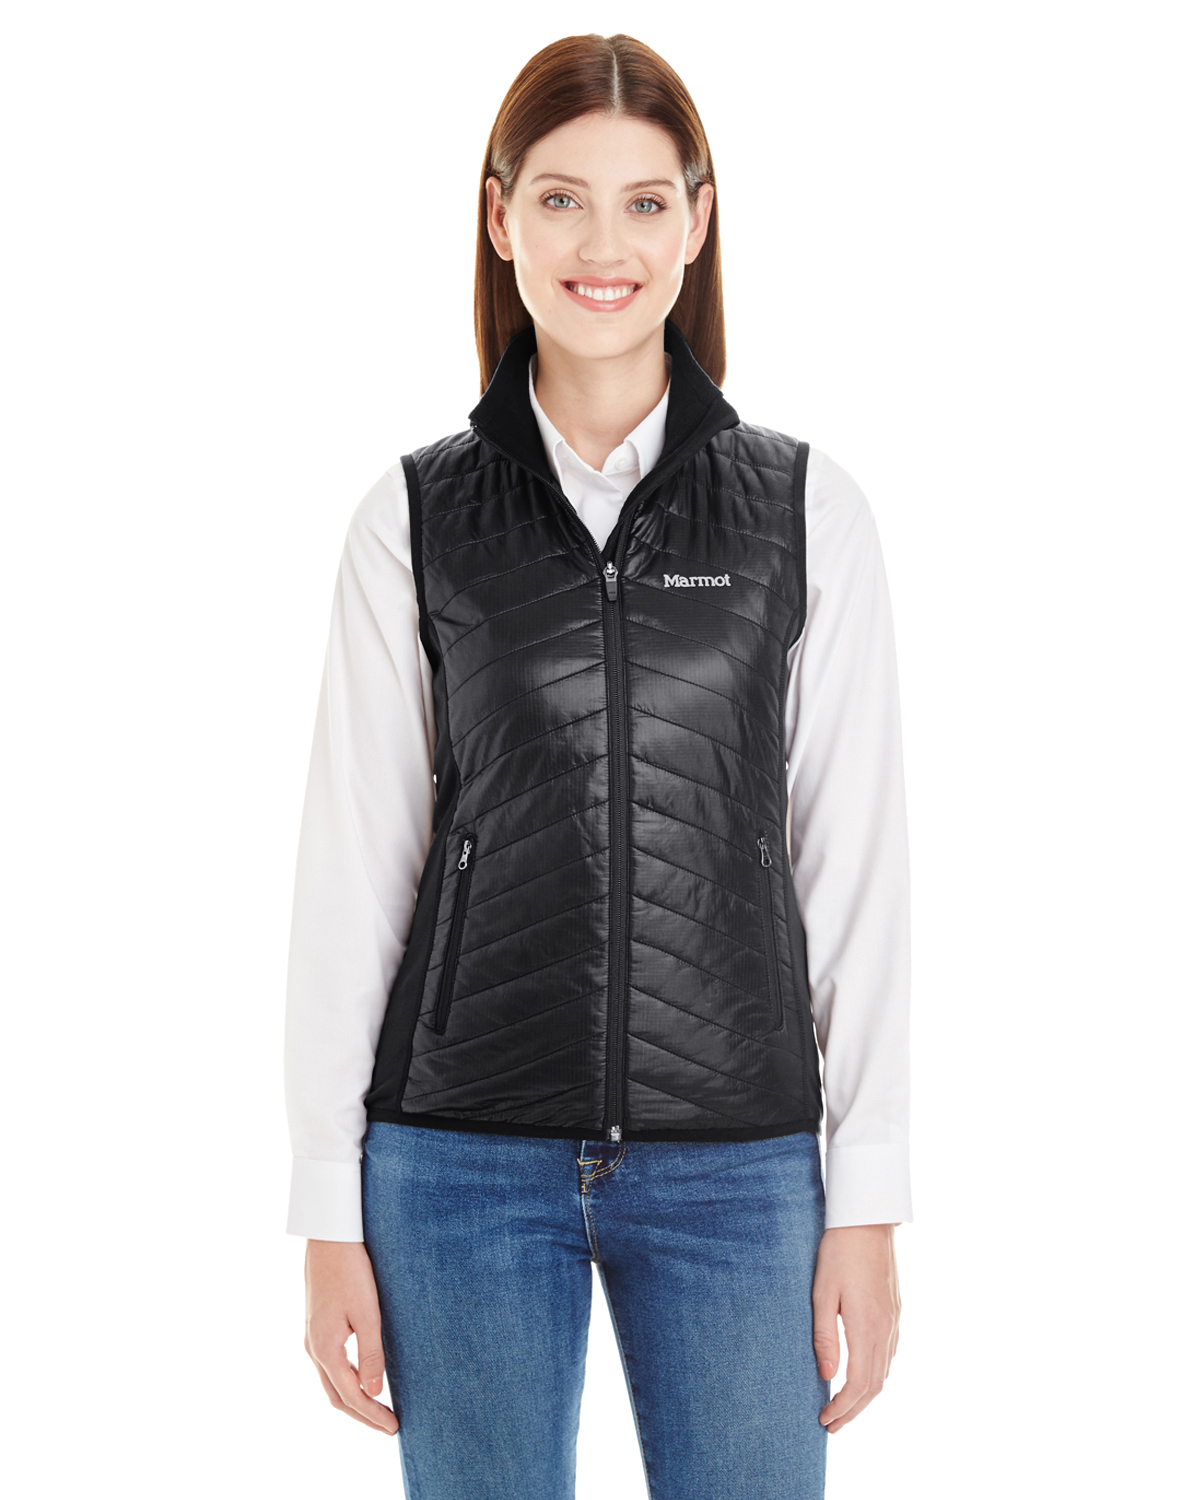 Marmot - 900291, Ladies' Variant Vest, Embroidery, Screen Printing - Logo Masters International